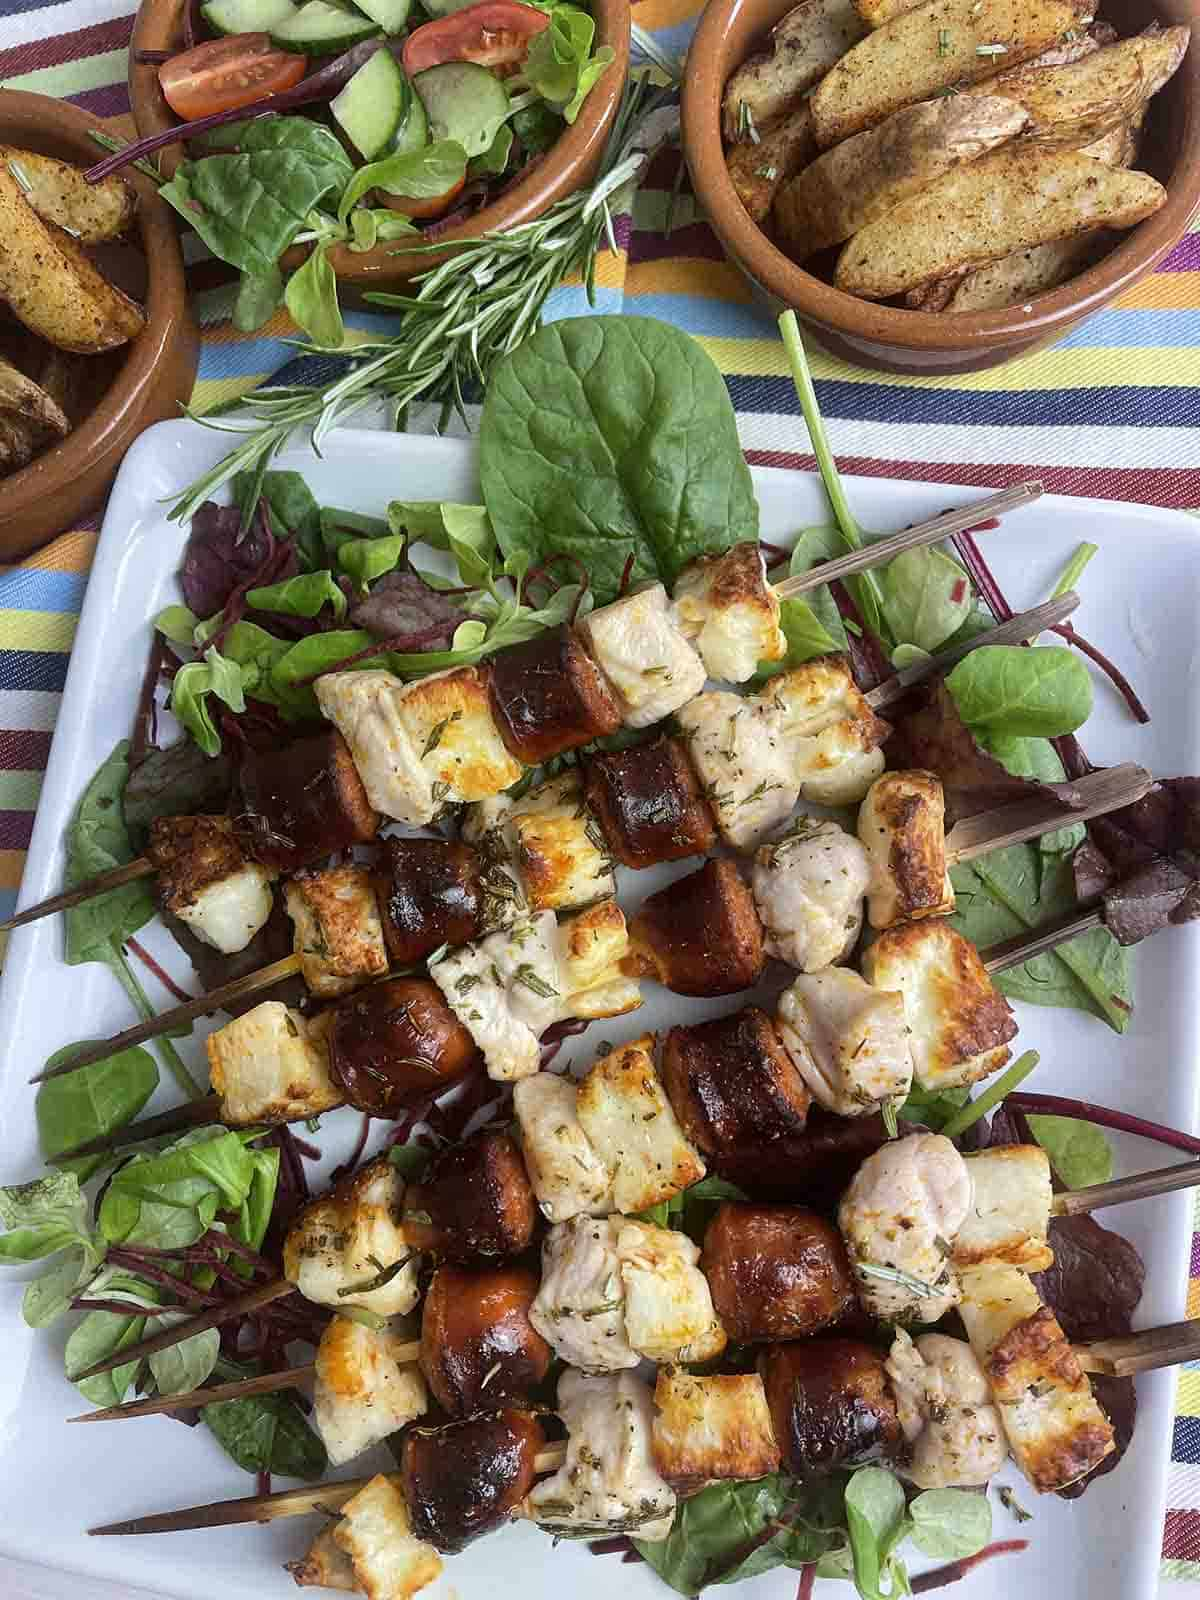 halloumi skewers with chicken and chorizo on a plate.